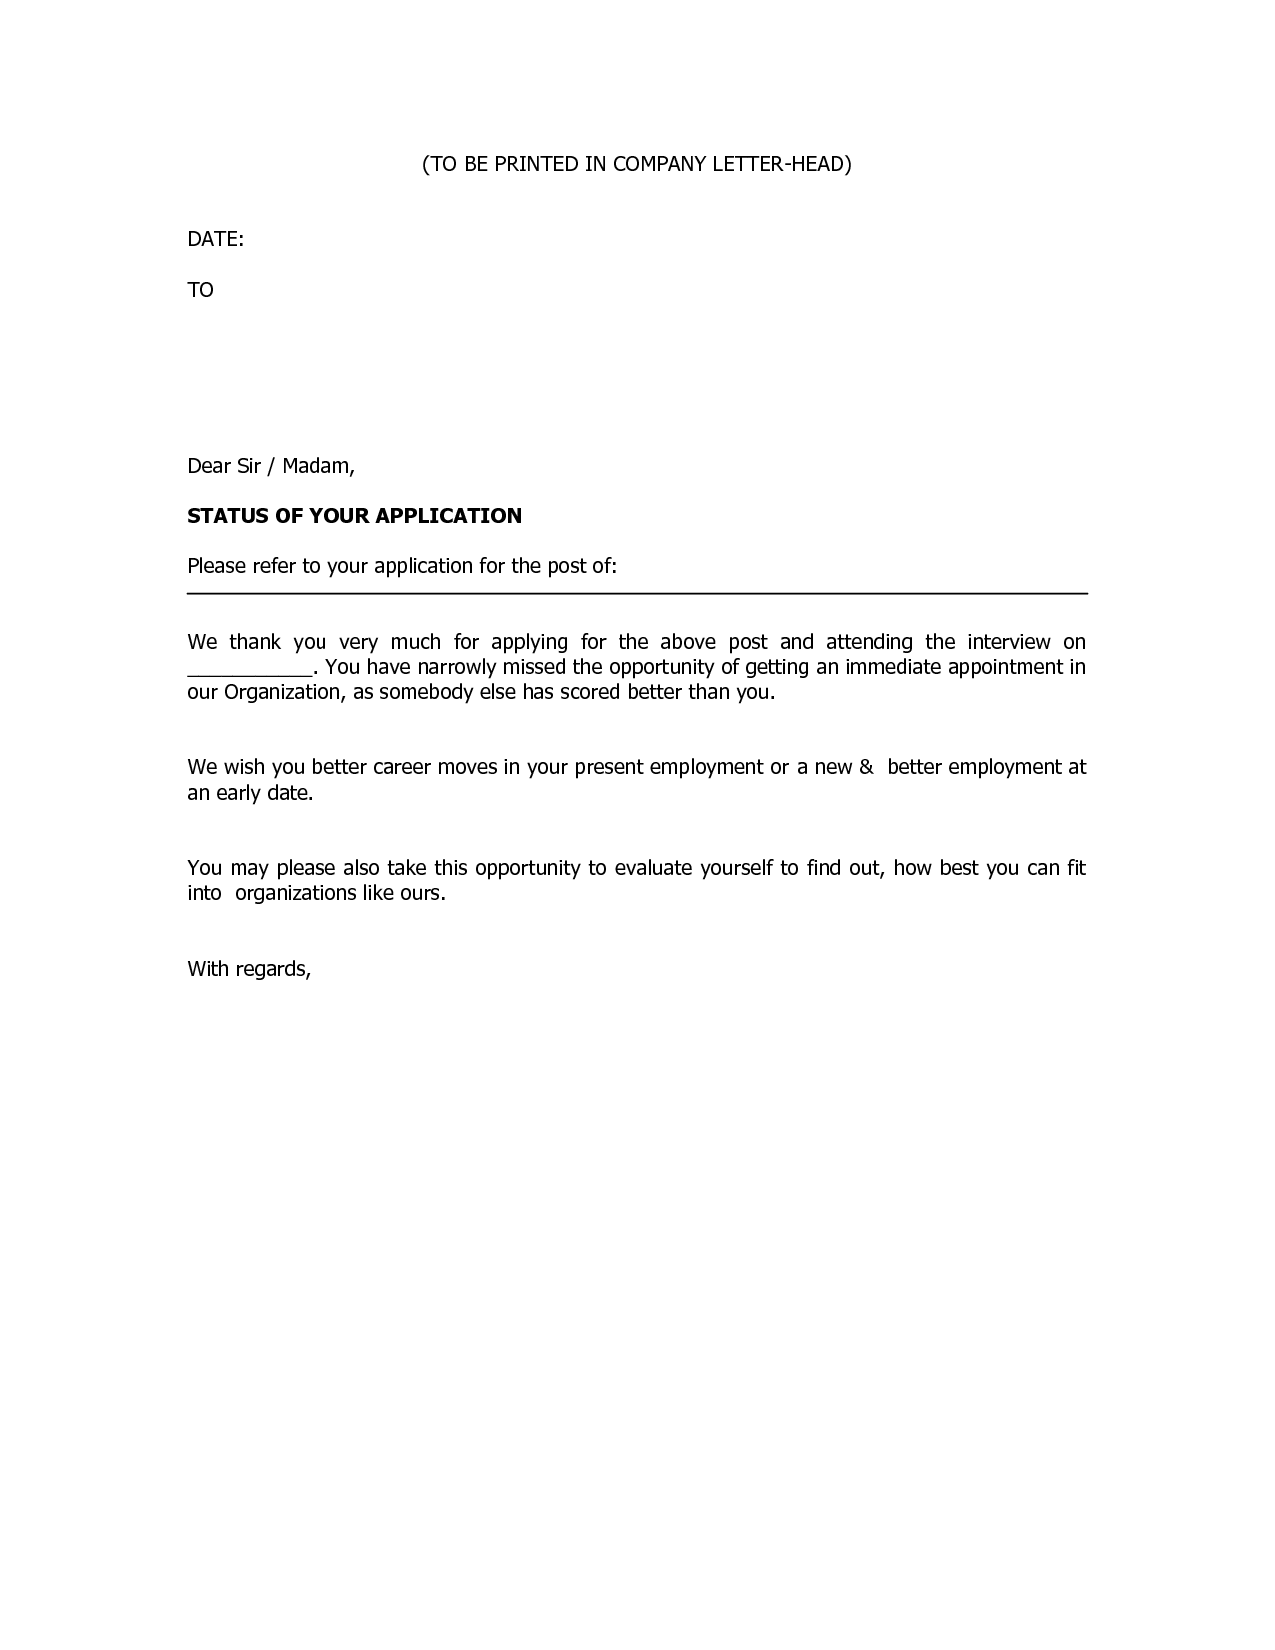 business rejection letter rejection letters are usually business rejection letter rejection letters are usually addressed to applicants who are not qualified for